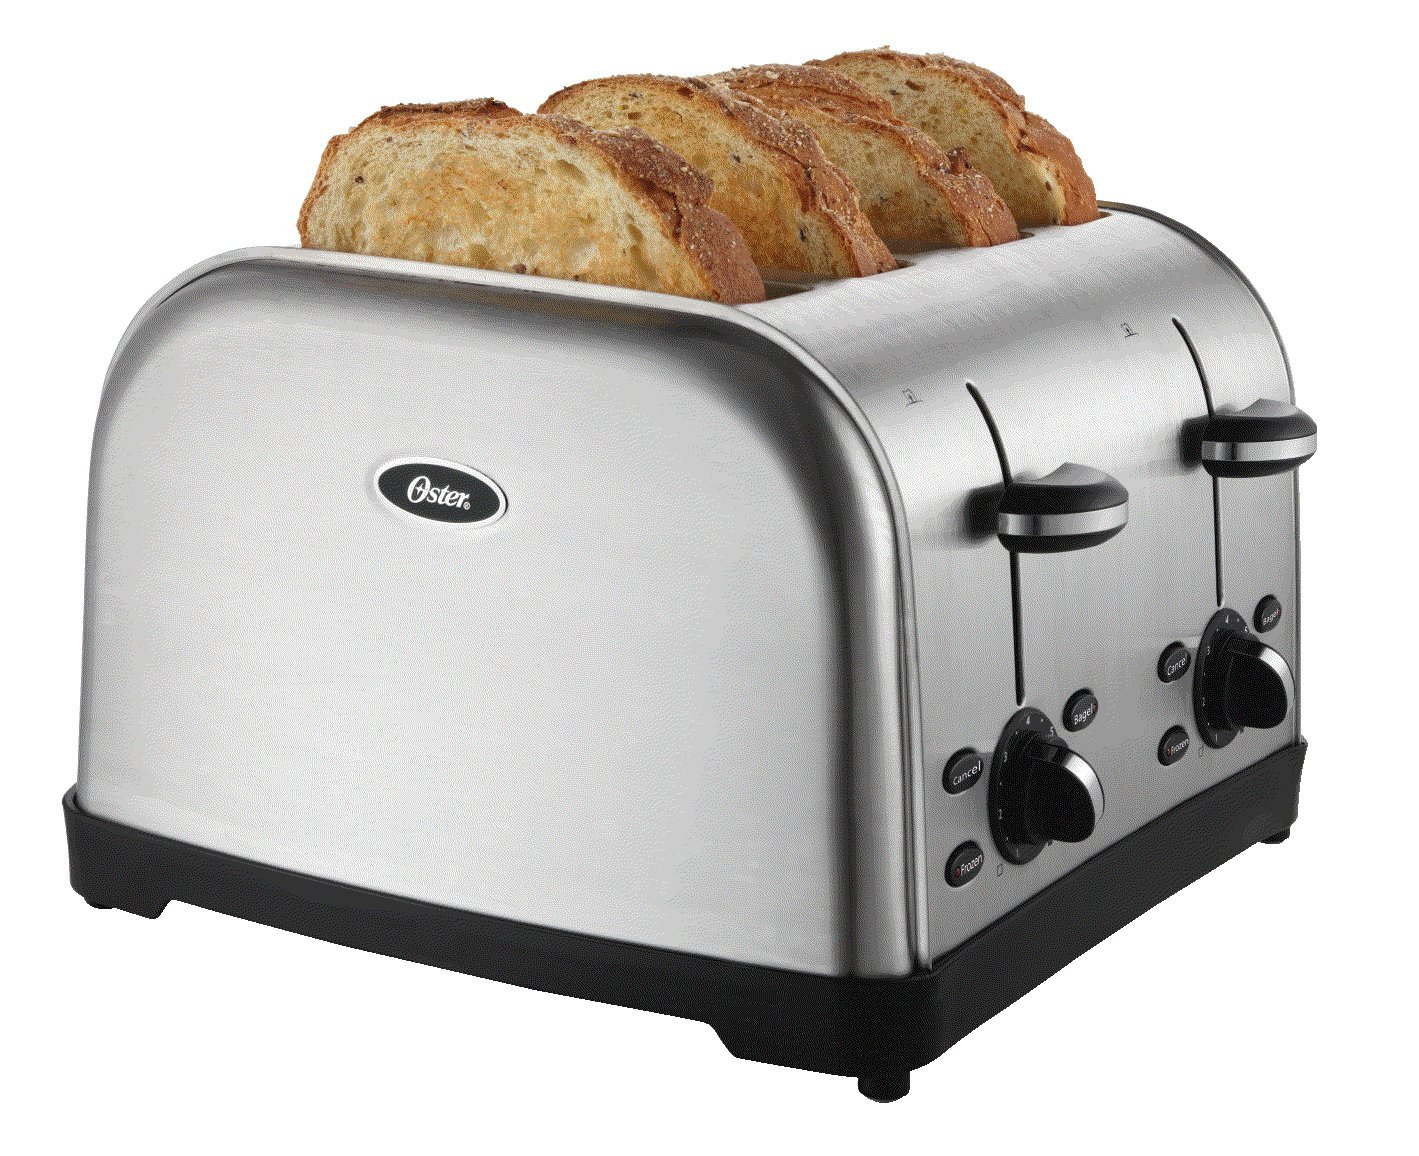 Amazon.com: Oster TSSTTRWF4S 4-Slice Toaster: Kitchen & Dining | {Toaster 44}